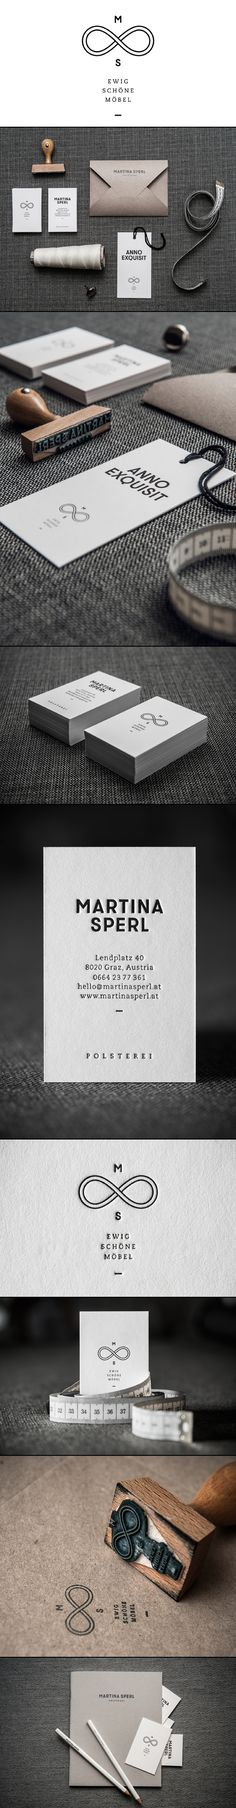 Branding just has to be creative. Martina Sperl Branding by moodley brand identity via Behance. Logo Design, Brand Identity Design, Graphic Design Branding, Logo Branding, Typography Design, Lettering, Brochure Design, Corporate Design, Corporate Identity